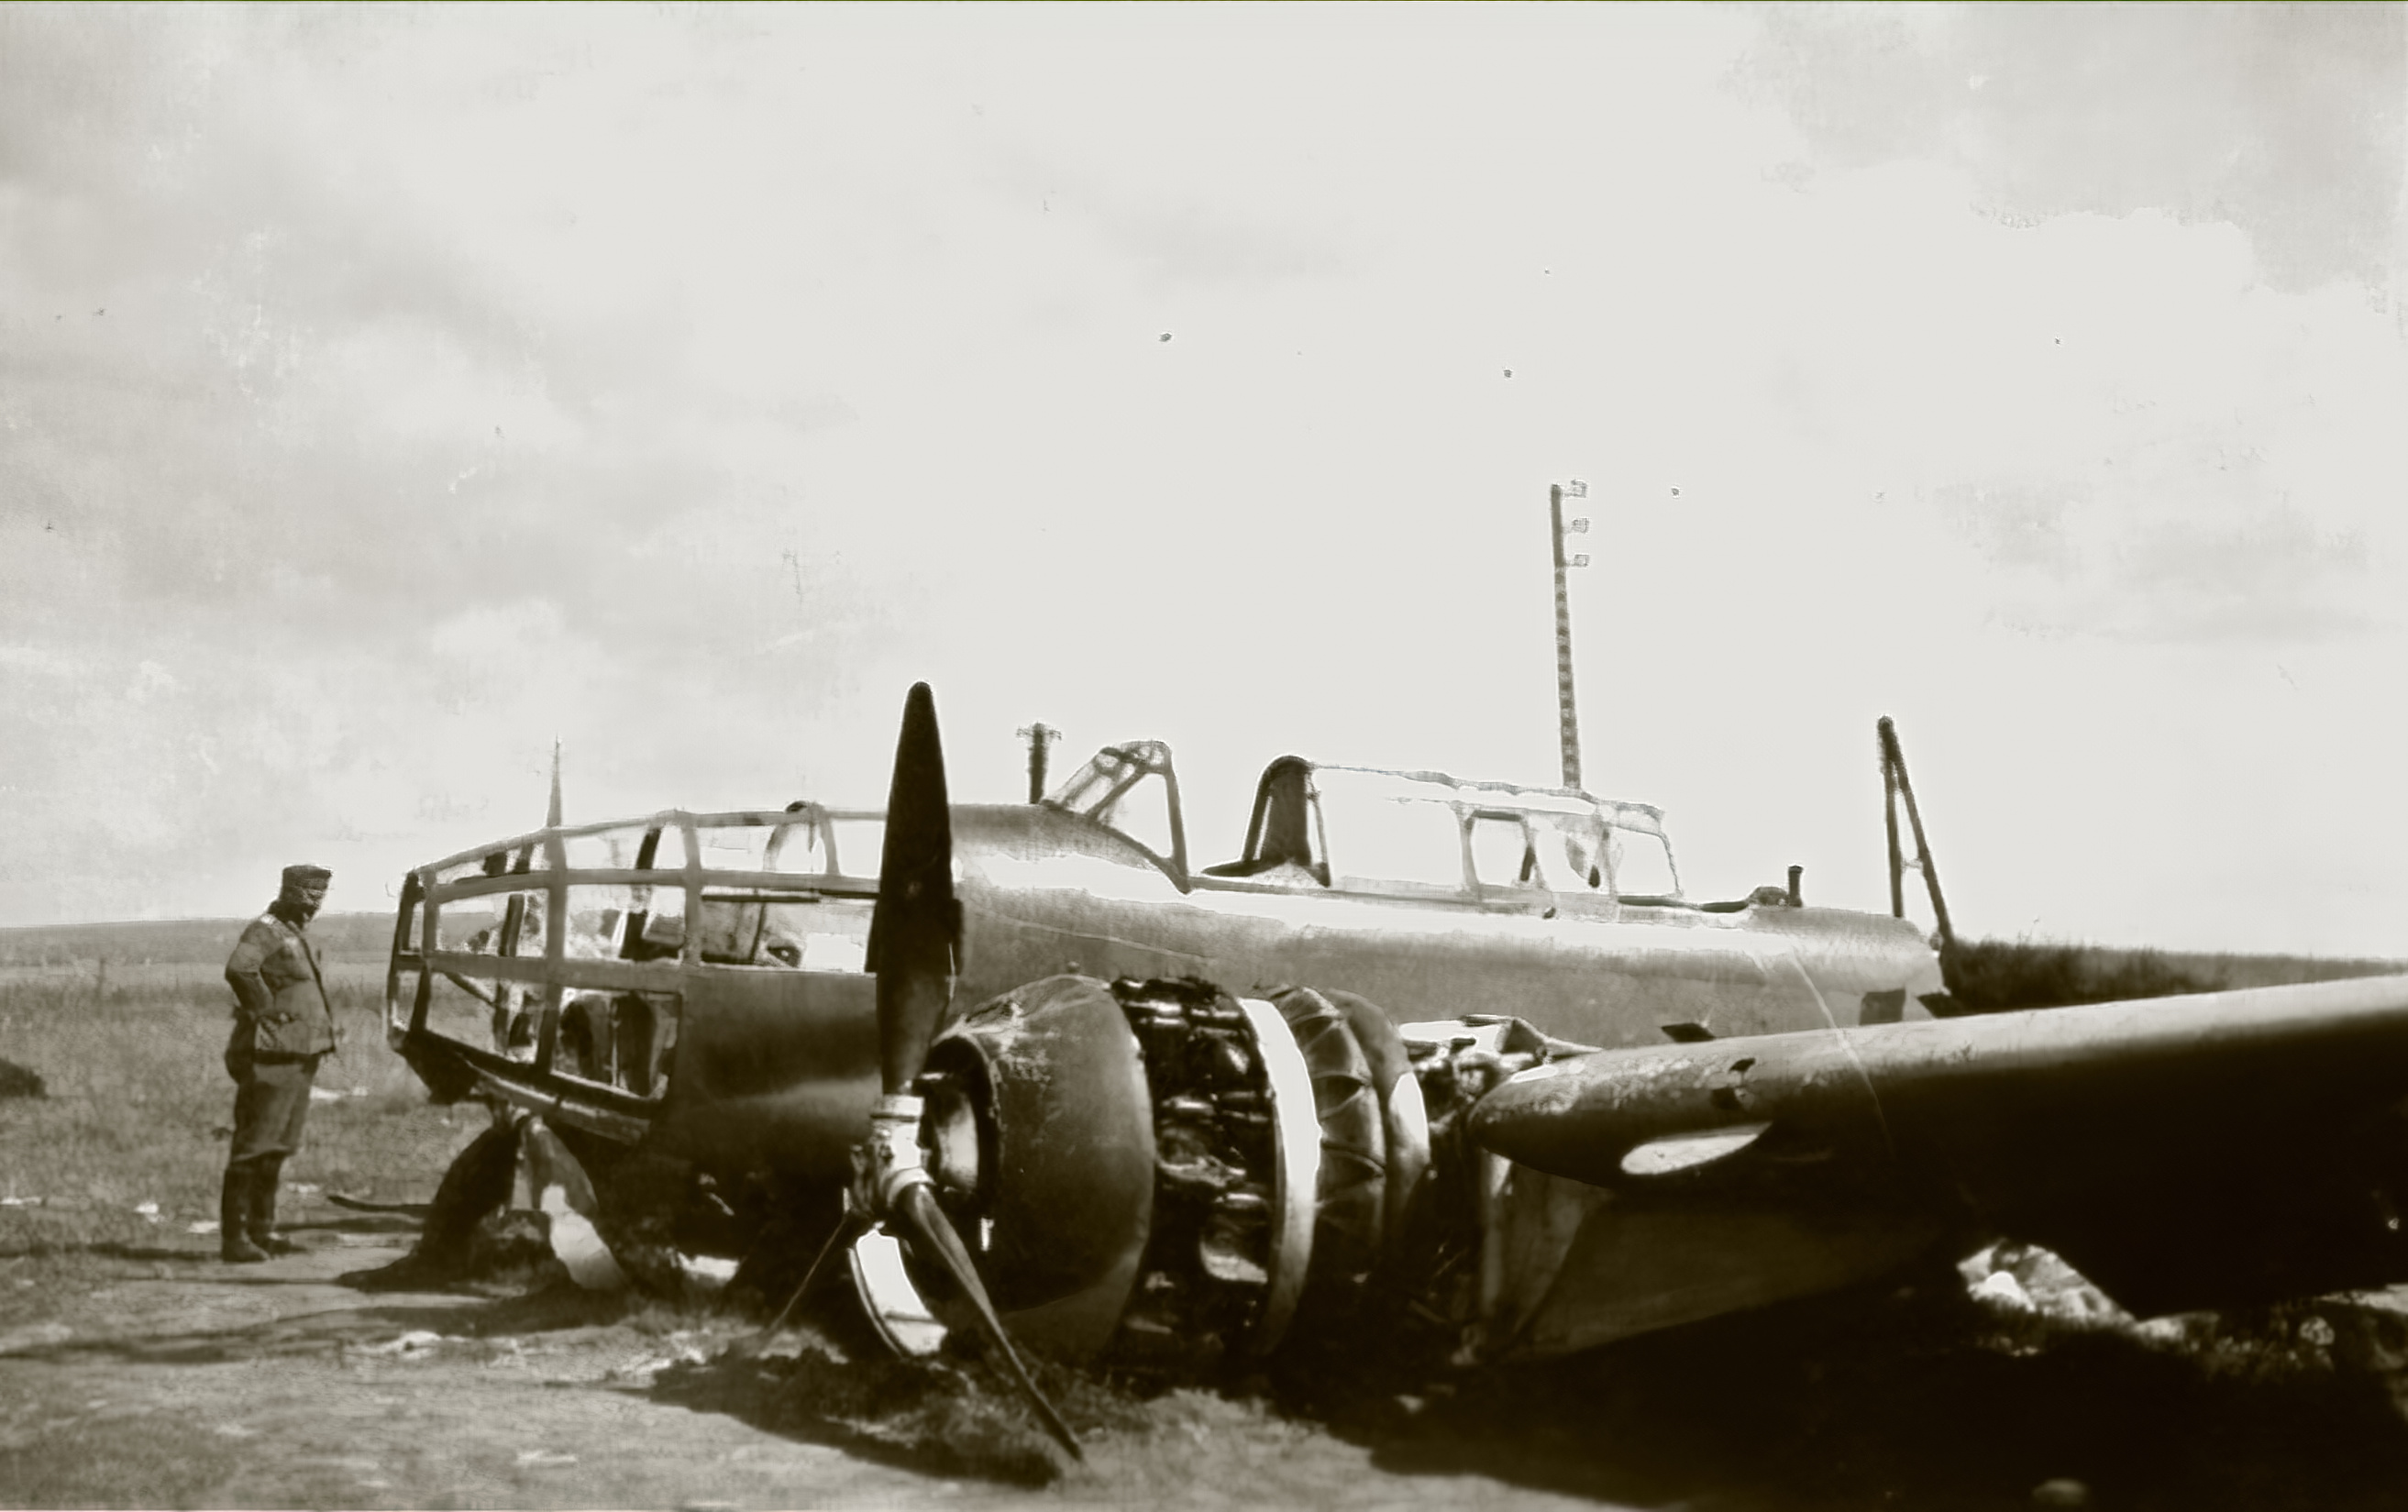 French Airforce Bloch MB 174 force landed France 1940 ebay 01